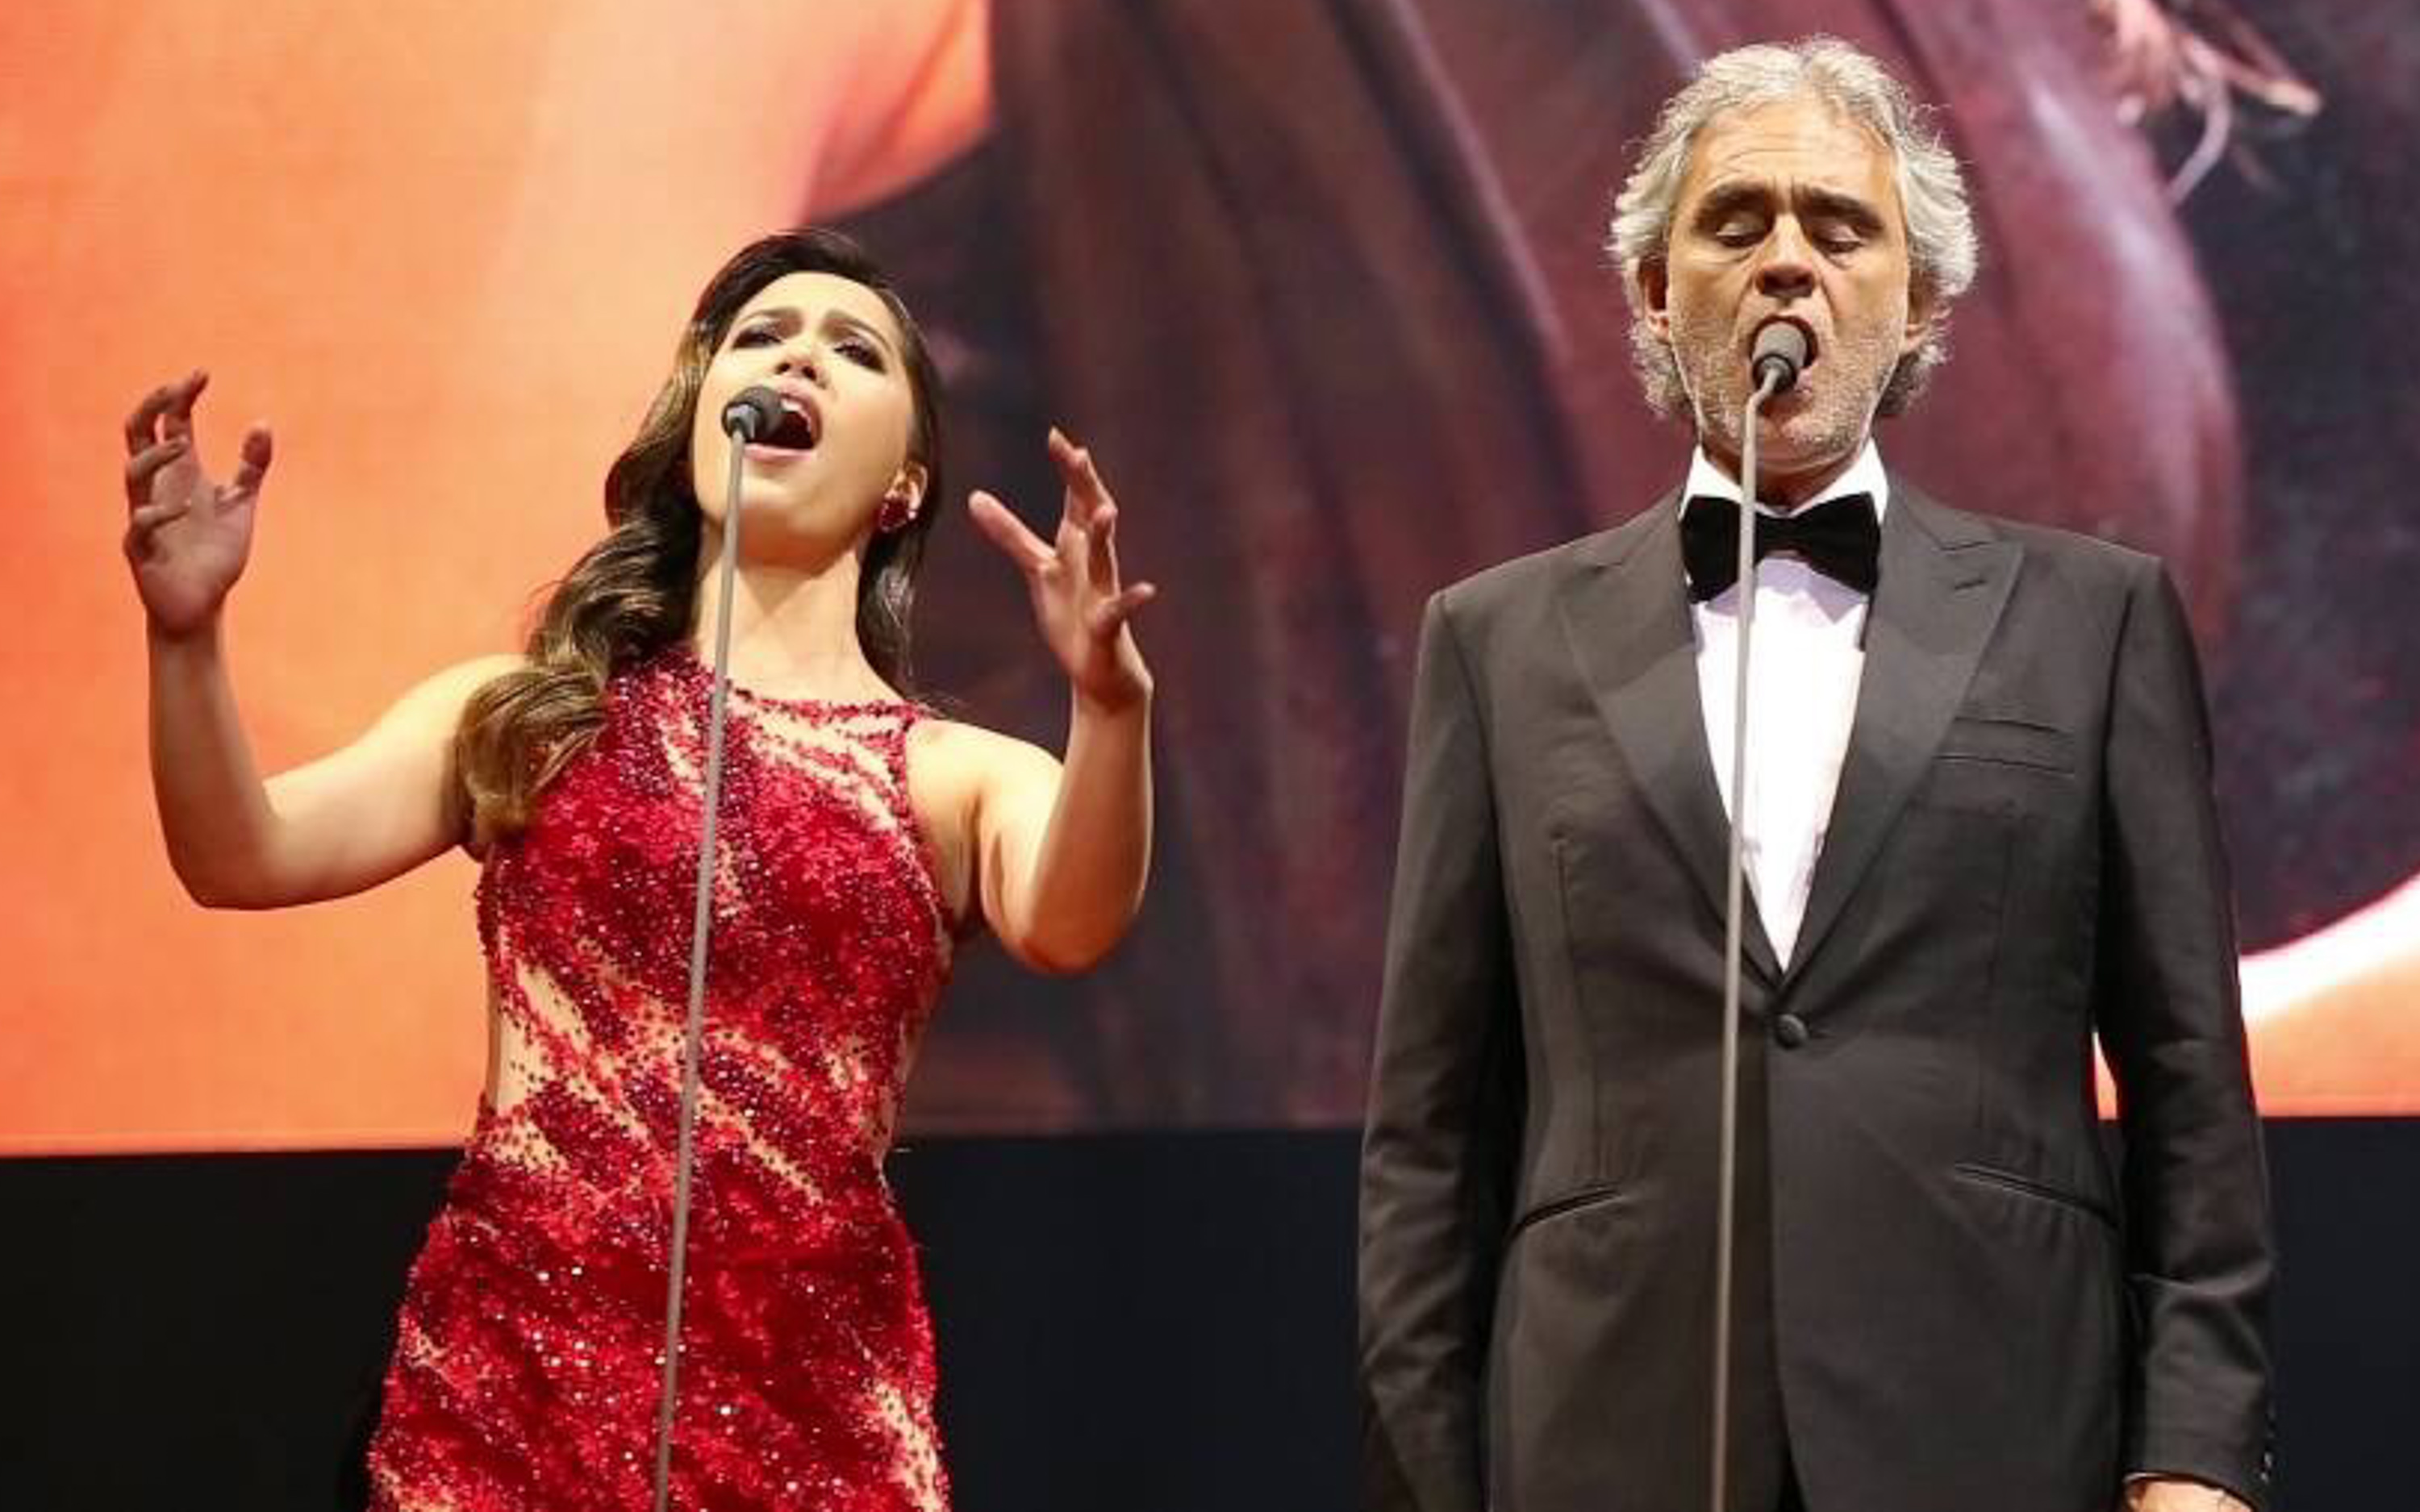 DREAM COME TRUE. Christine, who grew up listening to Andrea Bocelli, says she never imagined she would ever perform with him. Photo by Roberto Vivancos Studios